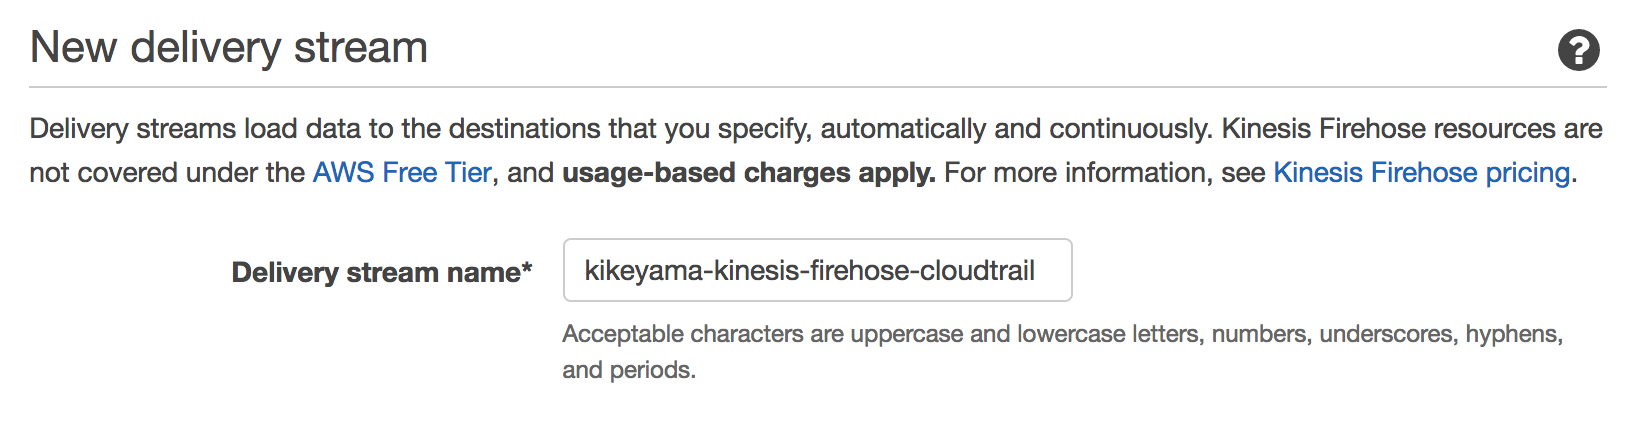 firehose__01_01.png